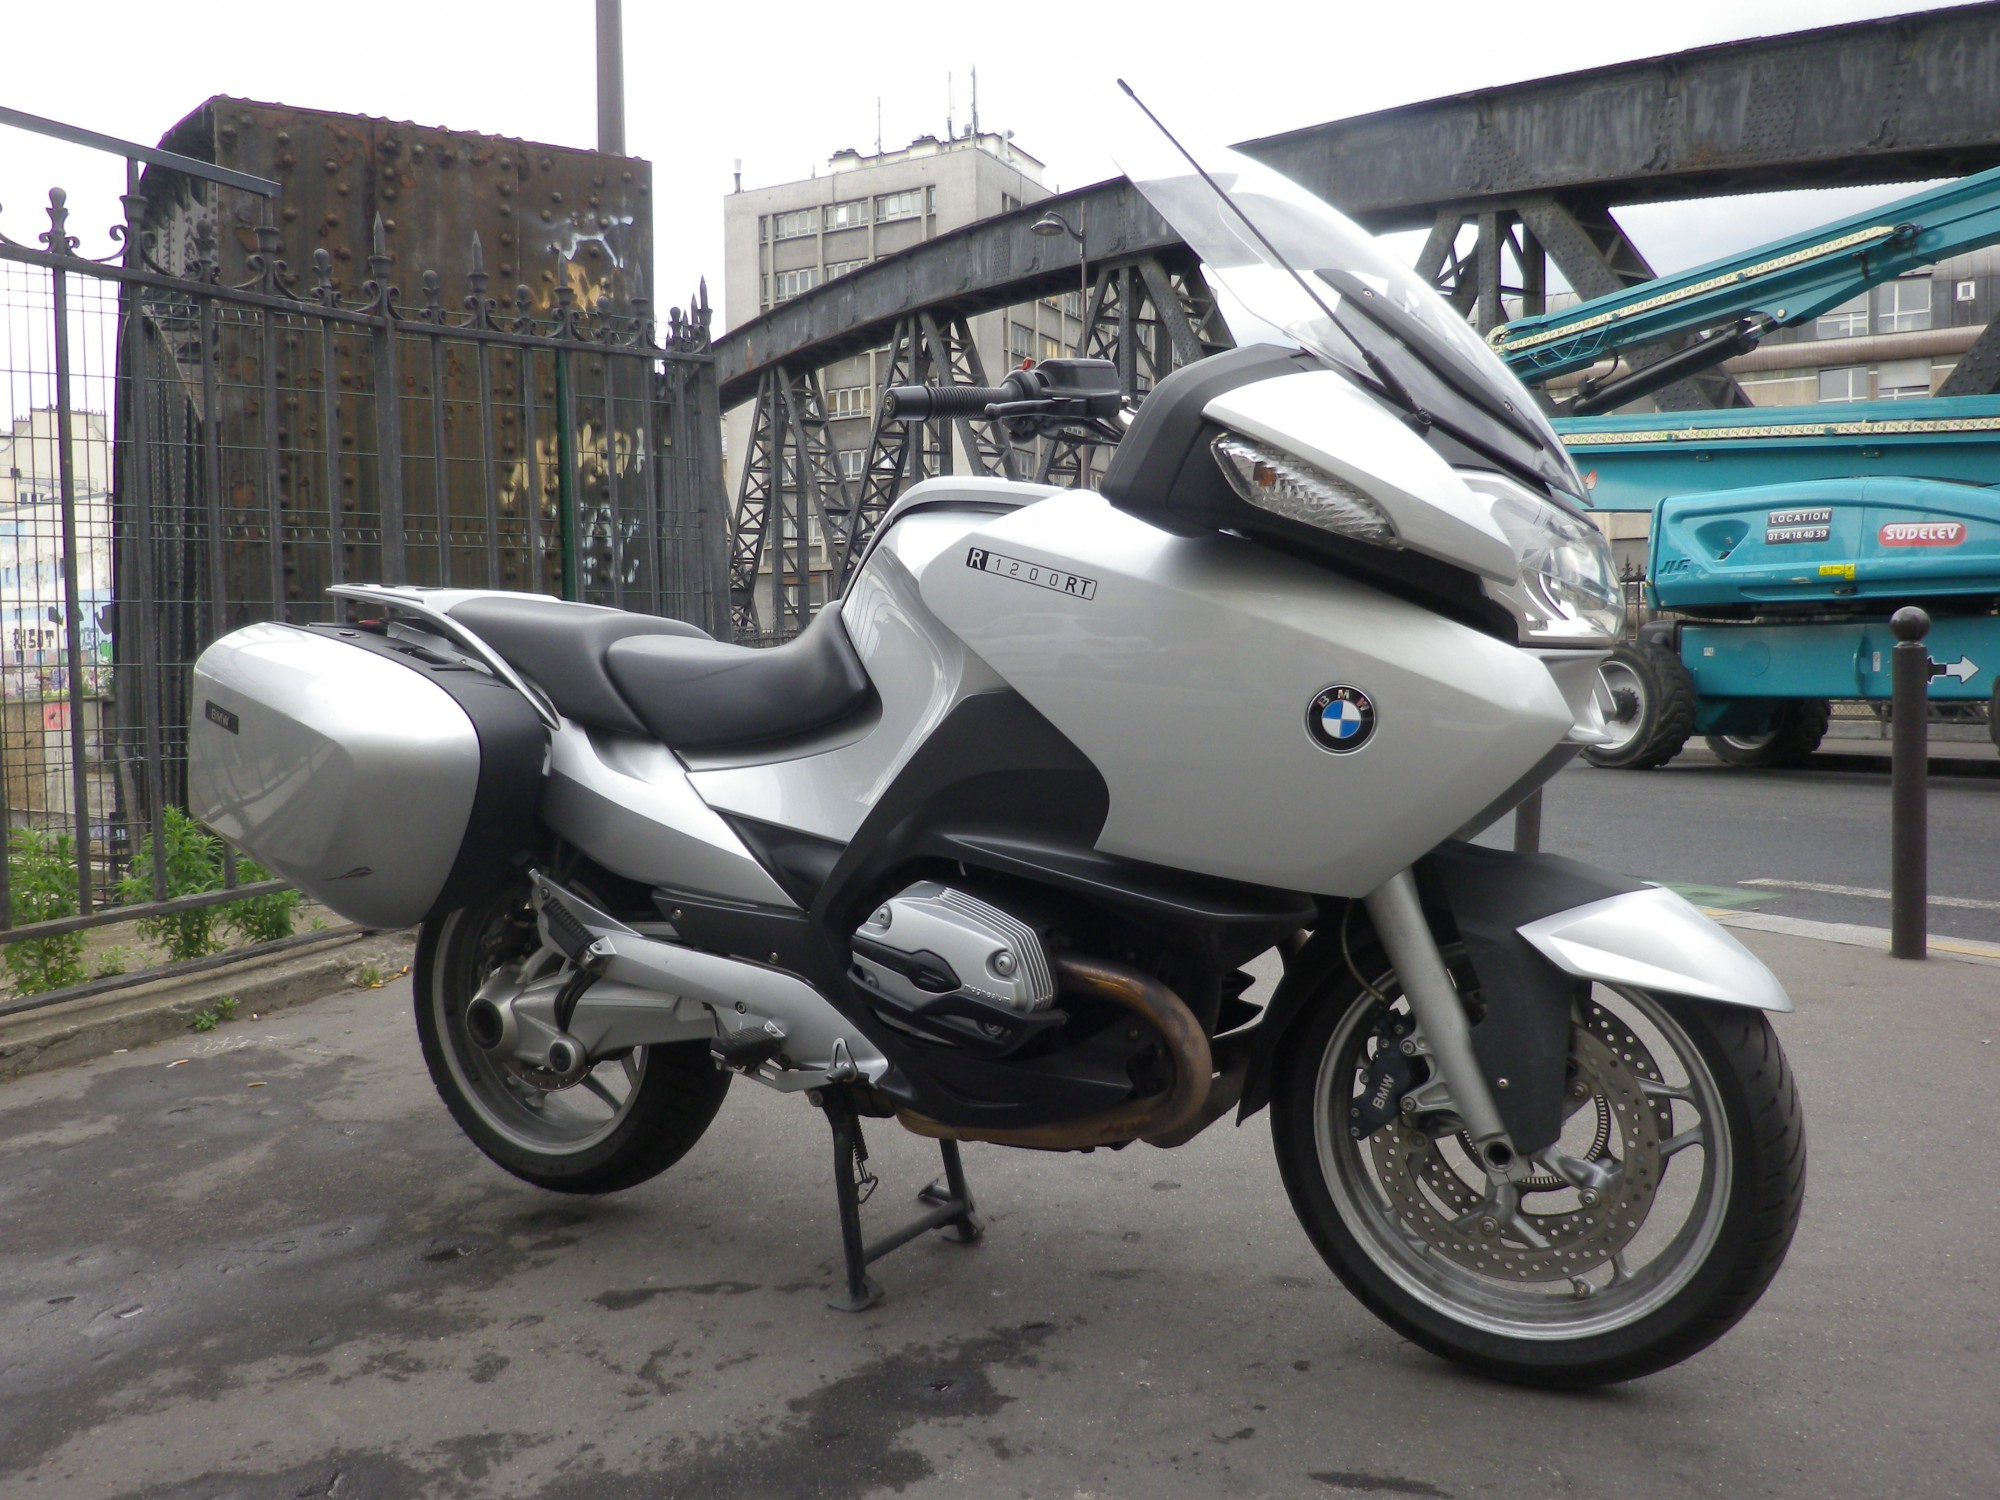 BMW 1200 R1200RT ABS - ESA